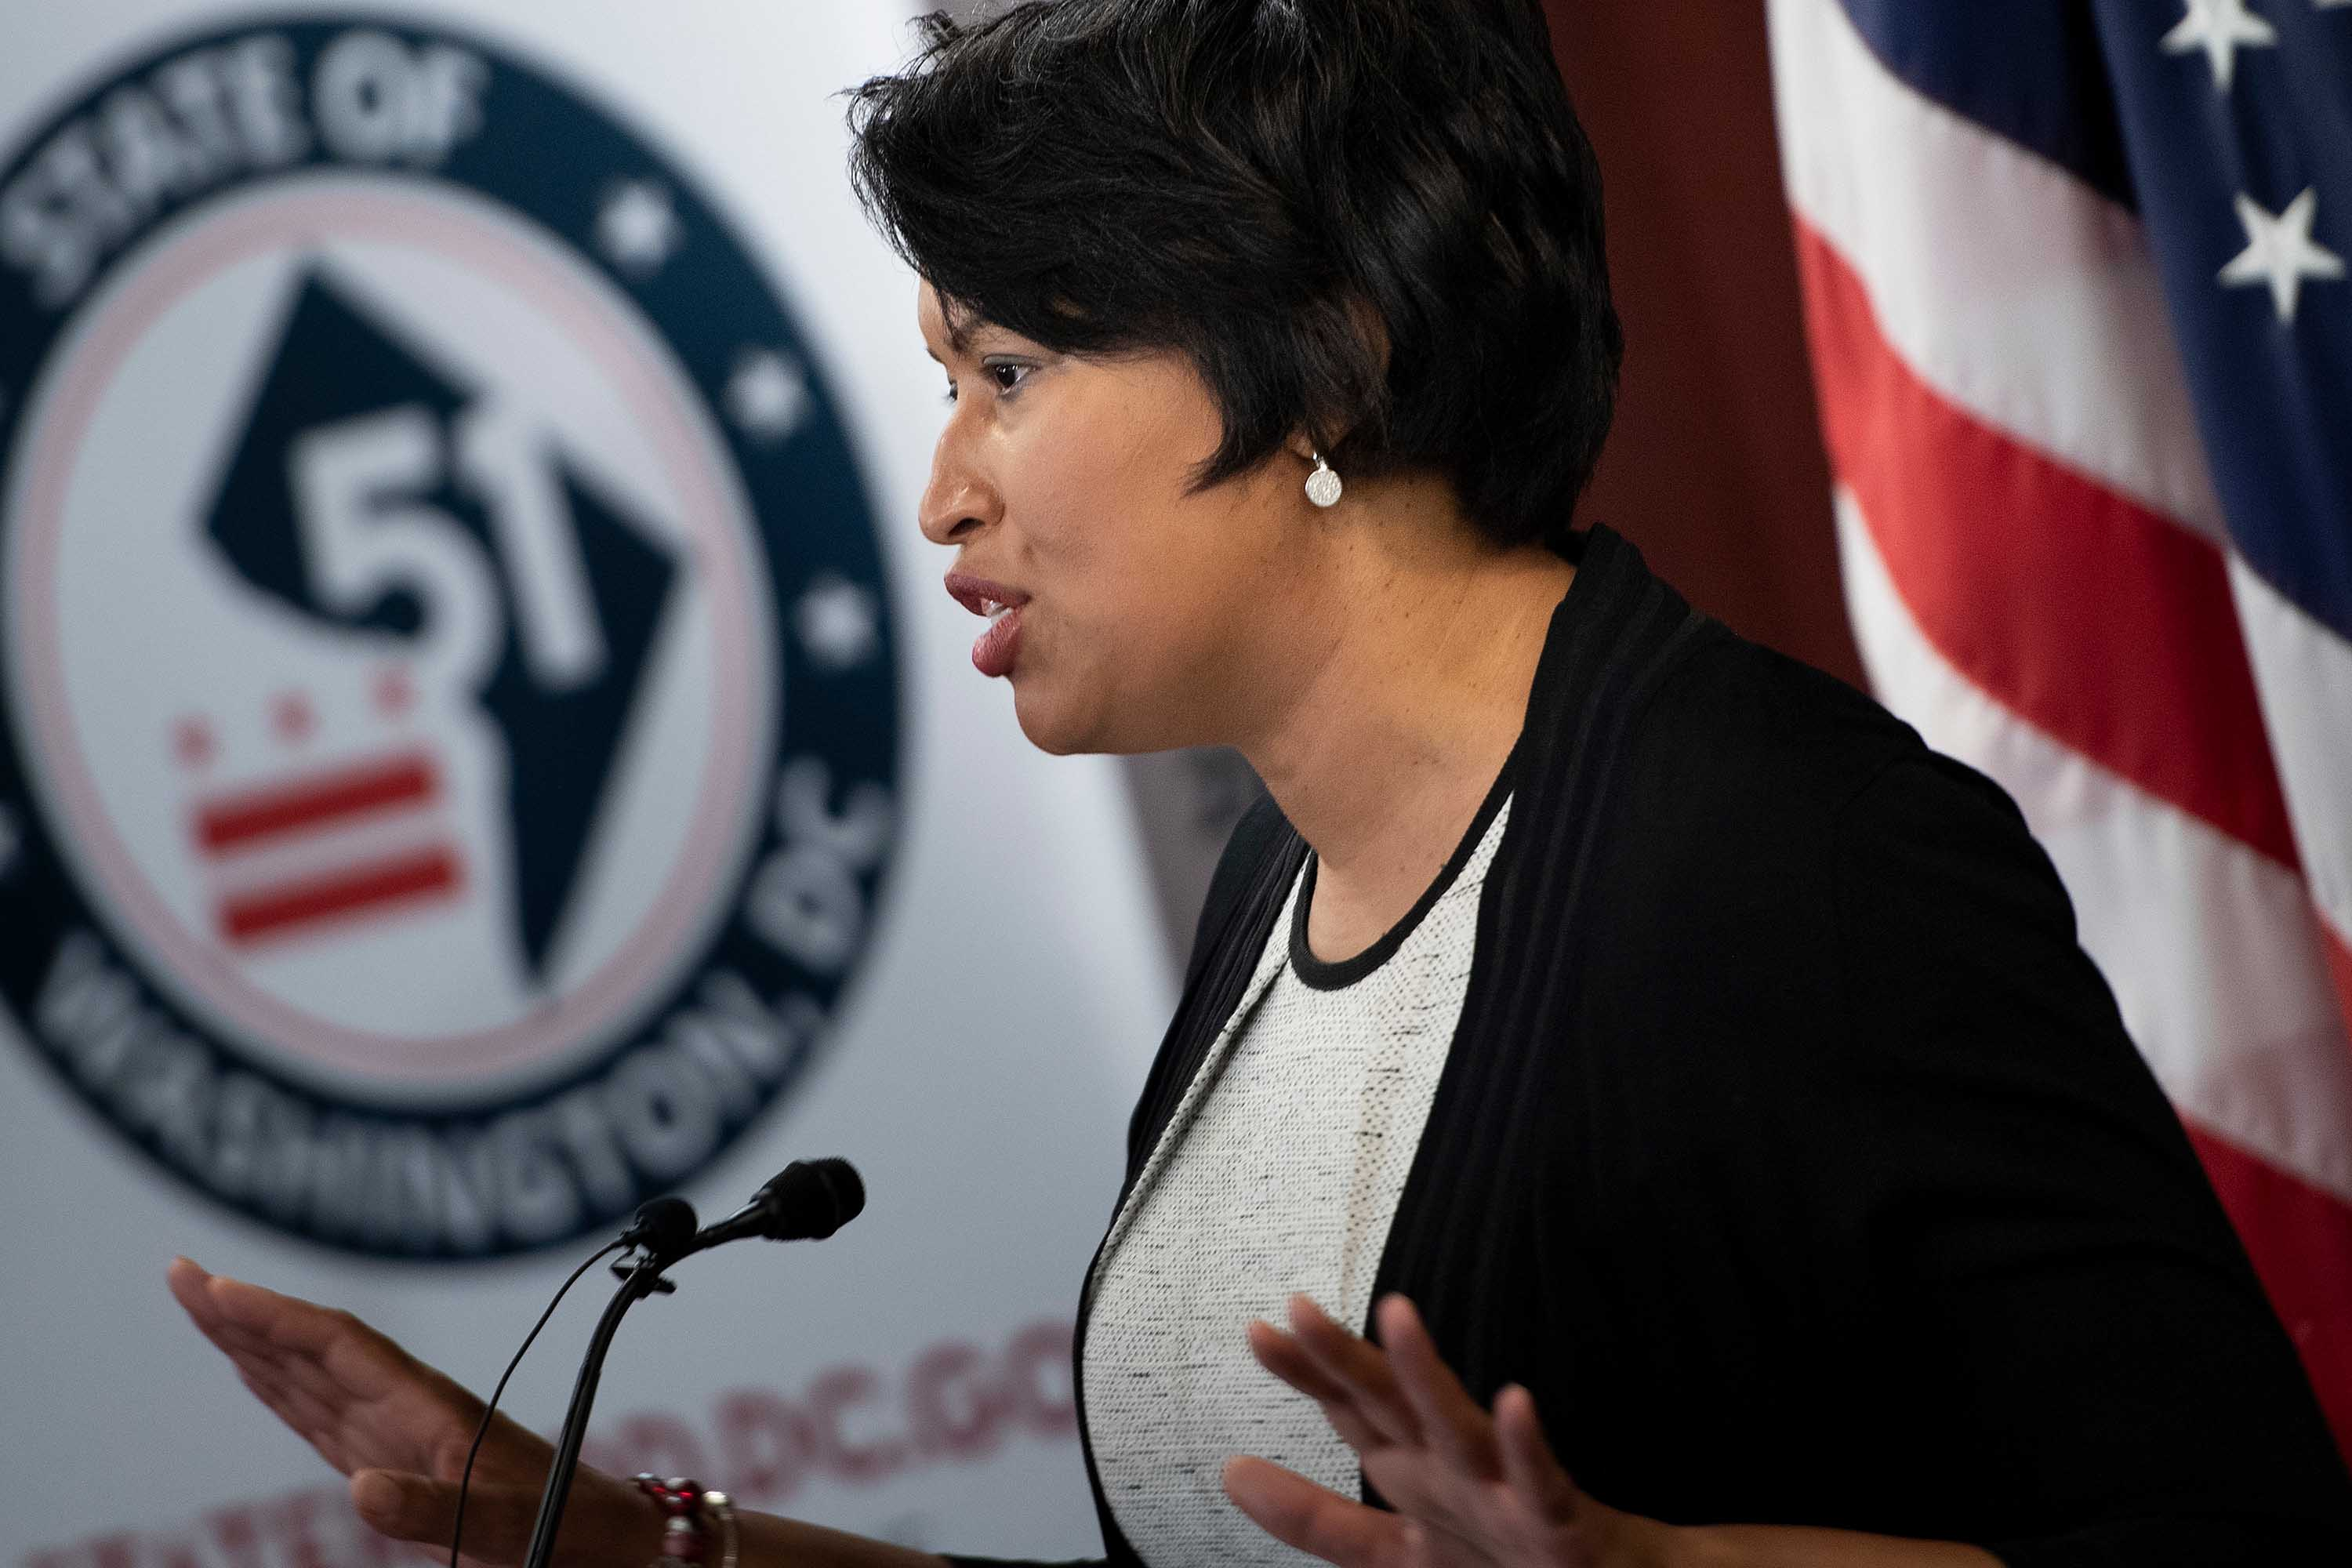 Washington, DC, Mayor Muriel Bowser speaks during a press conference on Capitol Hill in Washington, DC, on June 16.